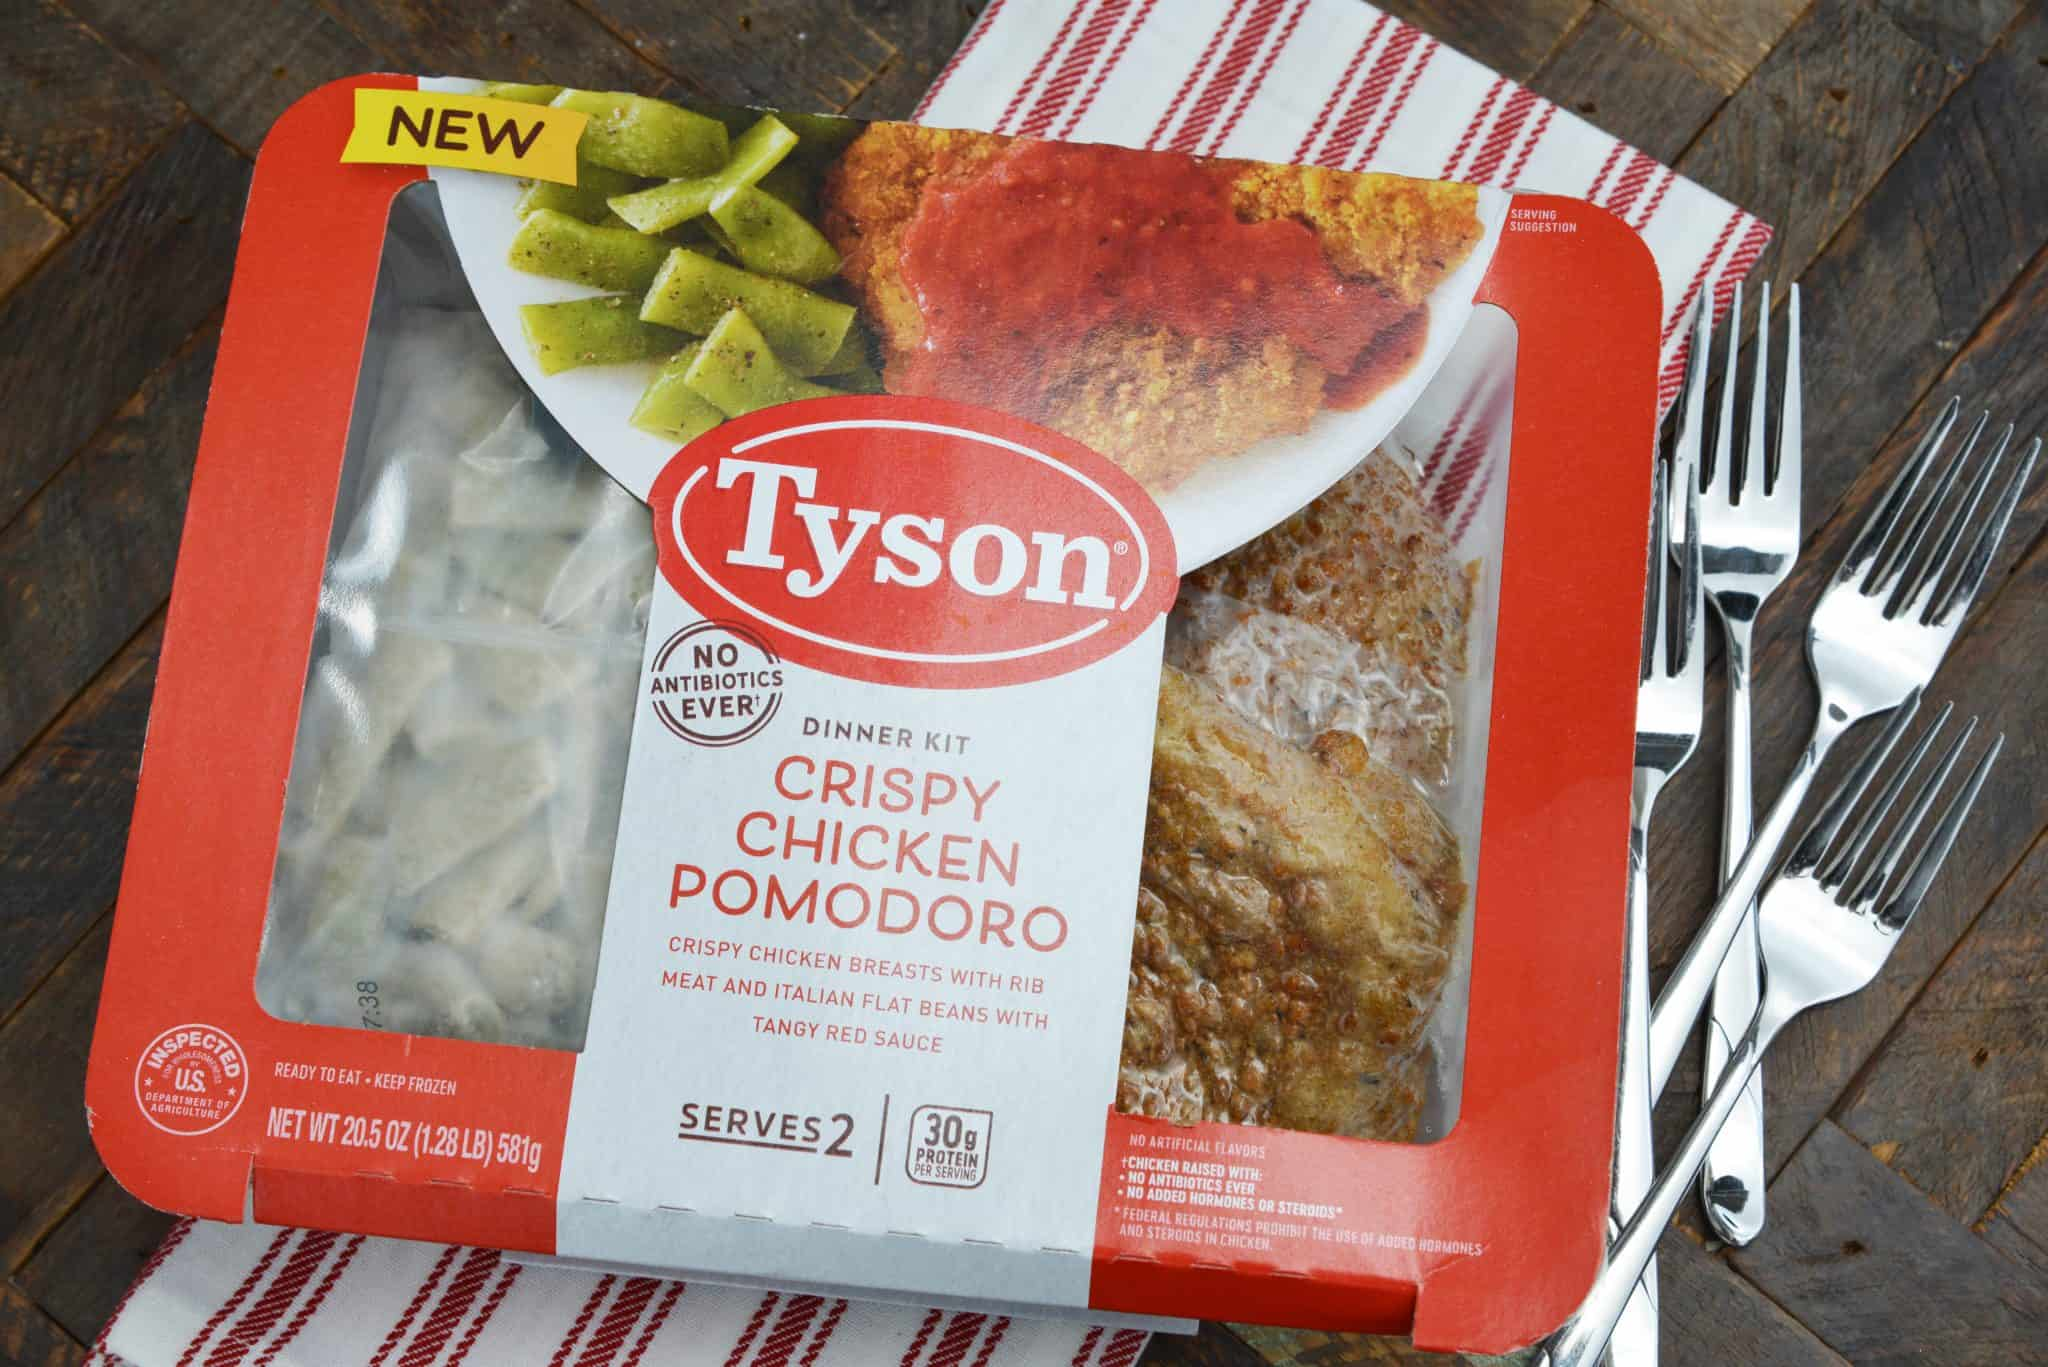 Crispy Chicken Pomodoro from Tyson® Fully Cooked Dinner and Entrée Kits